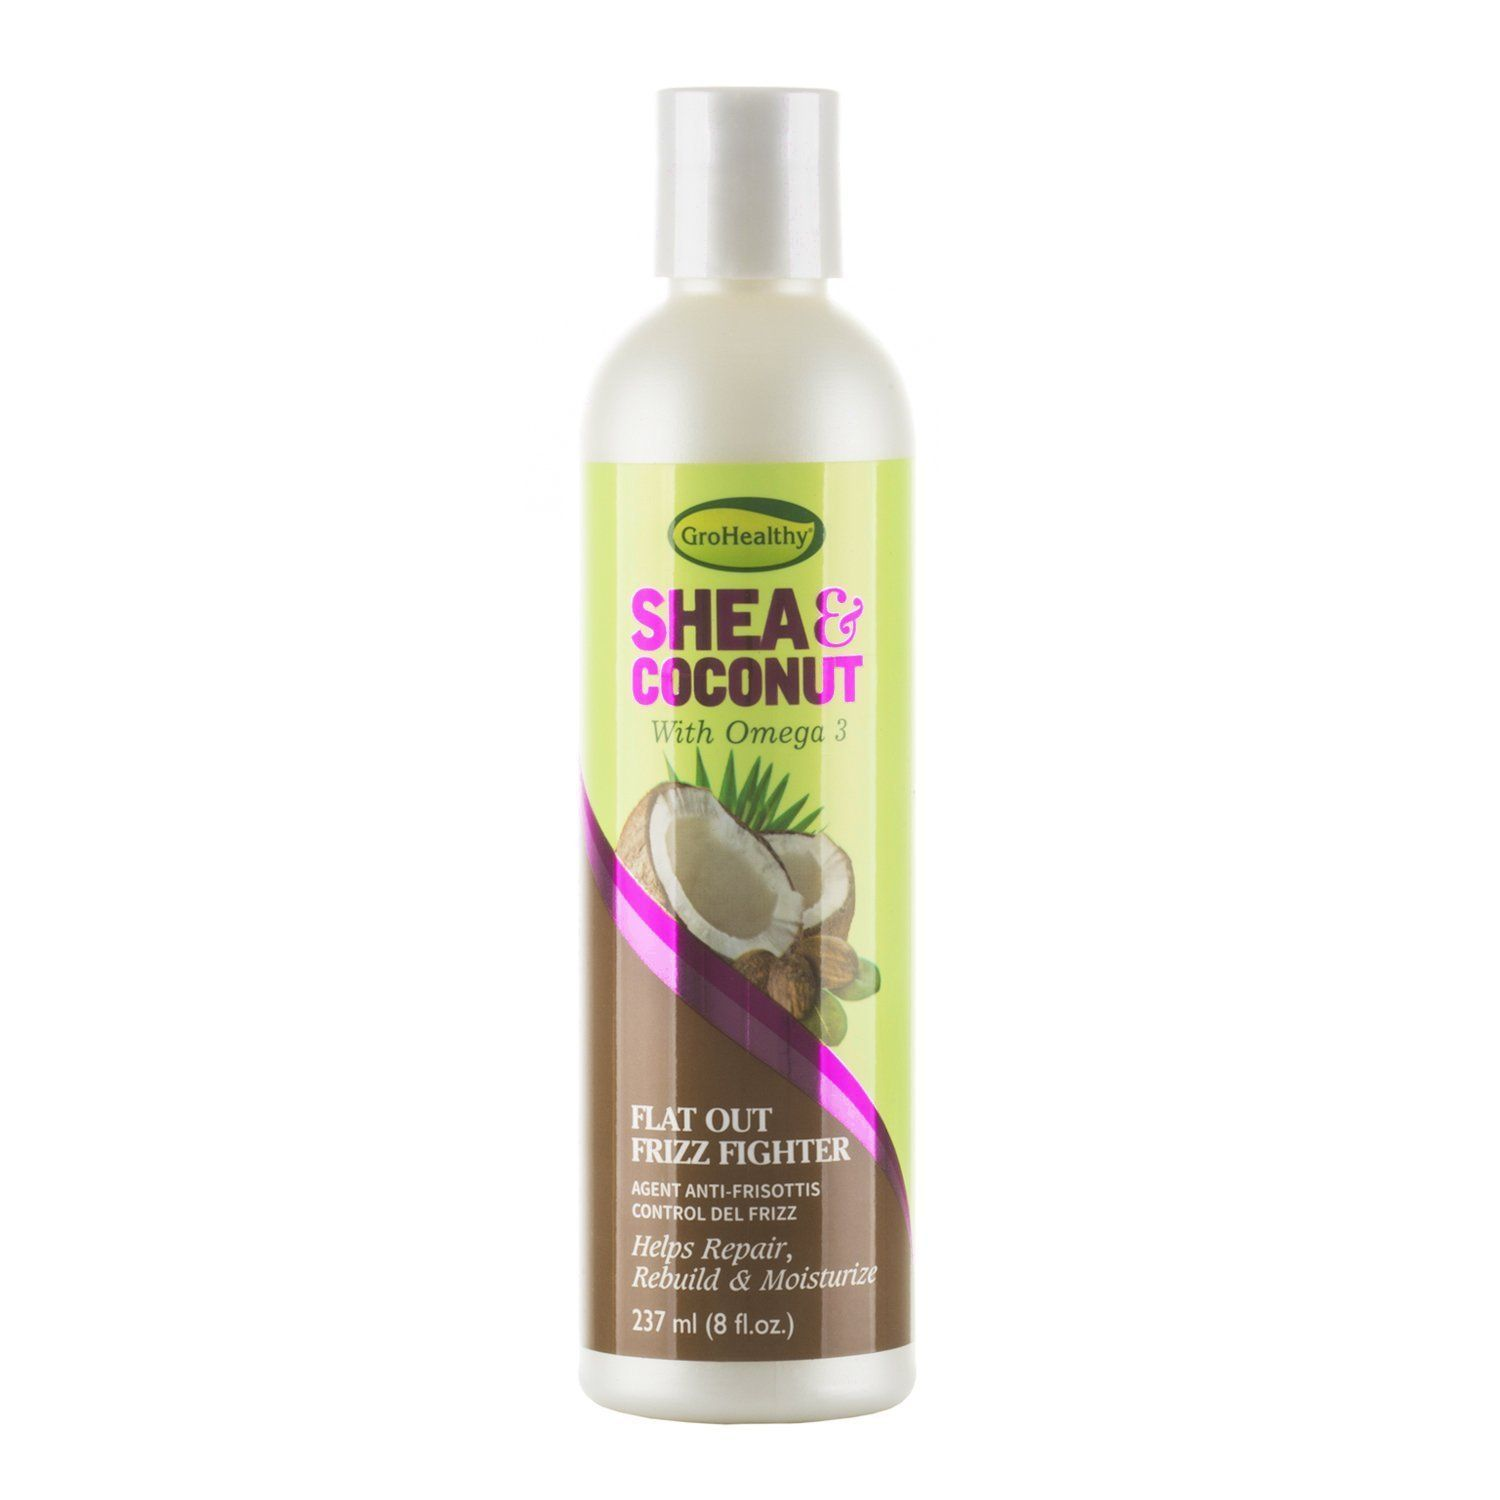 Sofn'Free GroHealthy Shea & Coconut Flat Out Frizz Fighter - 8oz